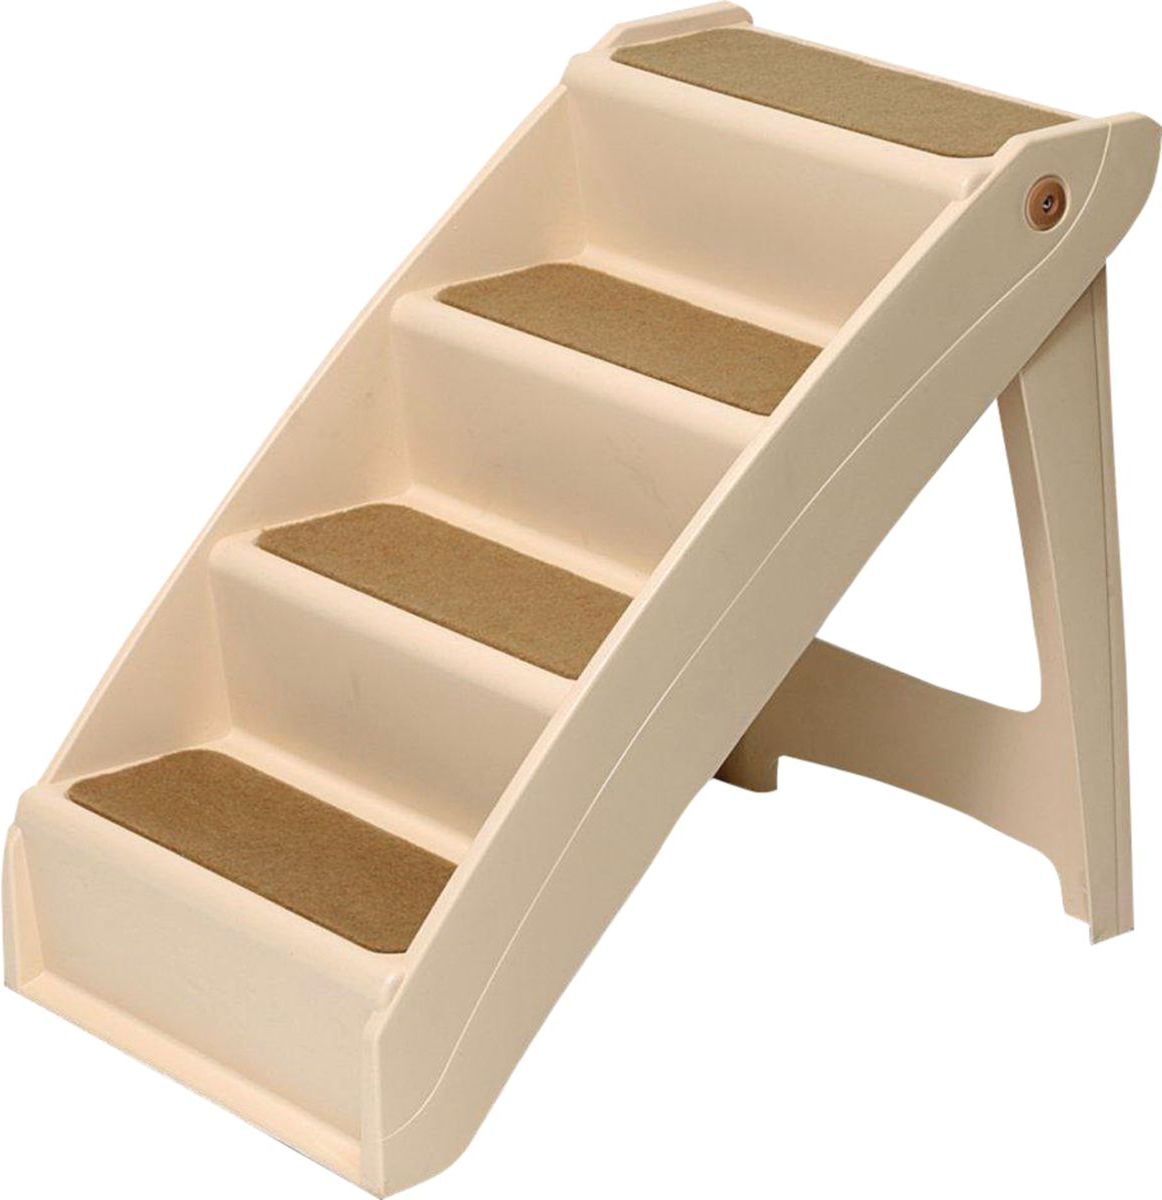 Solvit PupStep Plus™ Pet Stairs